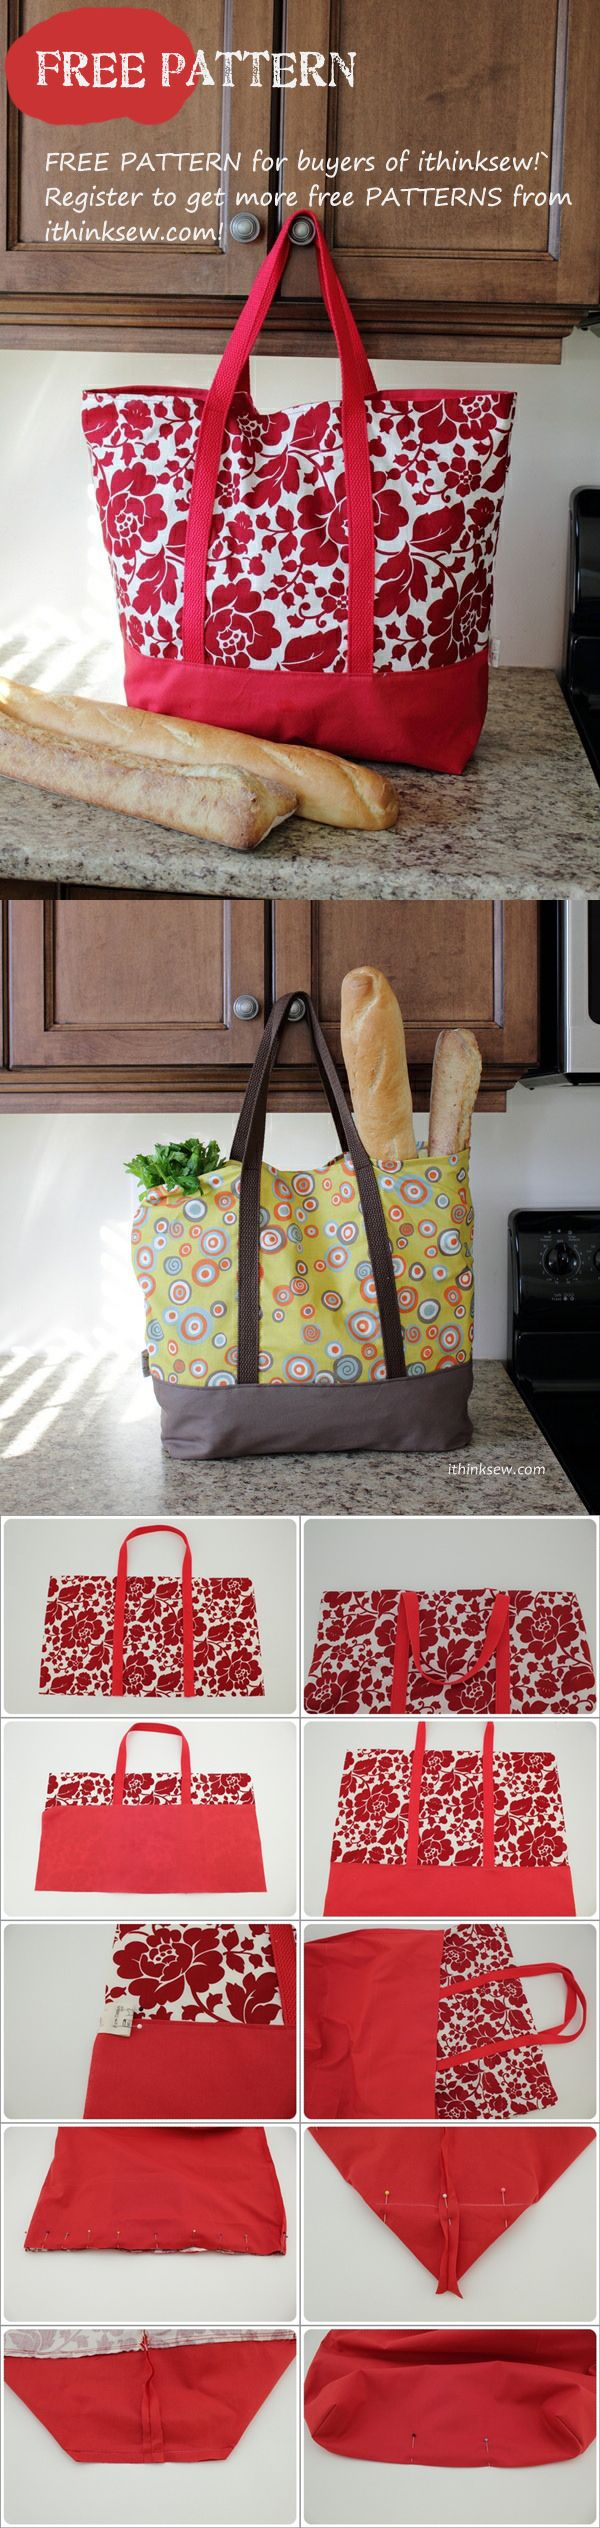 Free Patterns for buyers - Martha Market Bag...Im going to try some oilcloth for a cooler type bag.